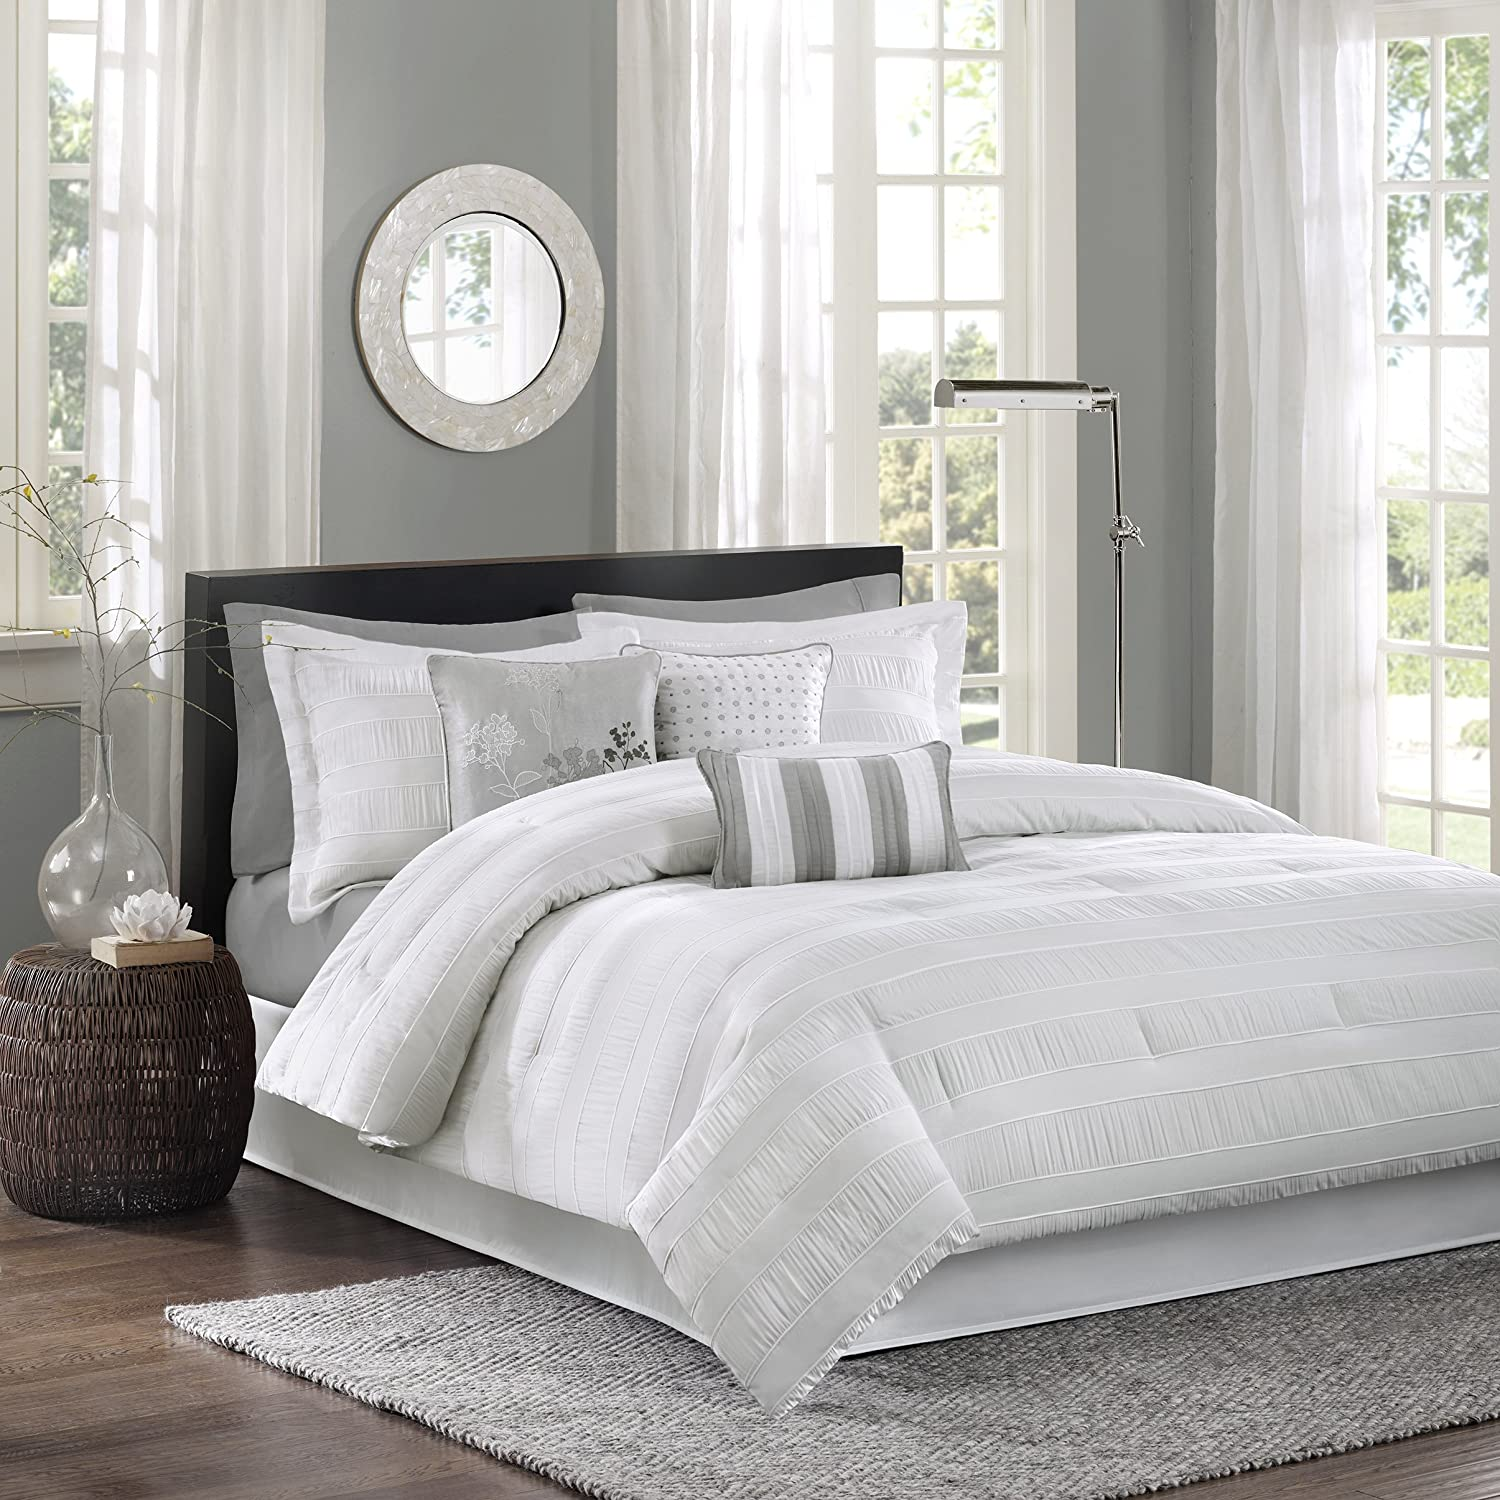 Madison Park Hampton 7 Piece Comforter Set, King, White